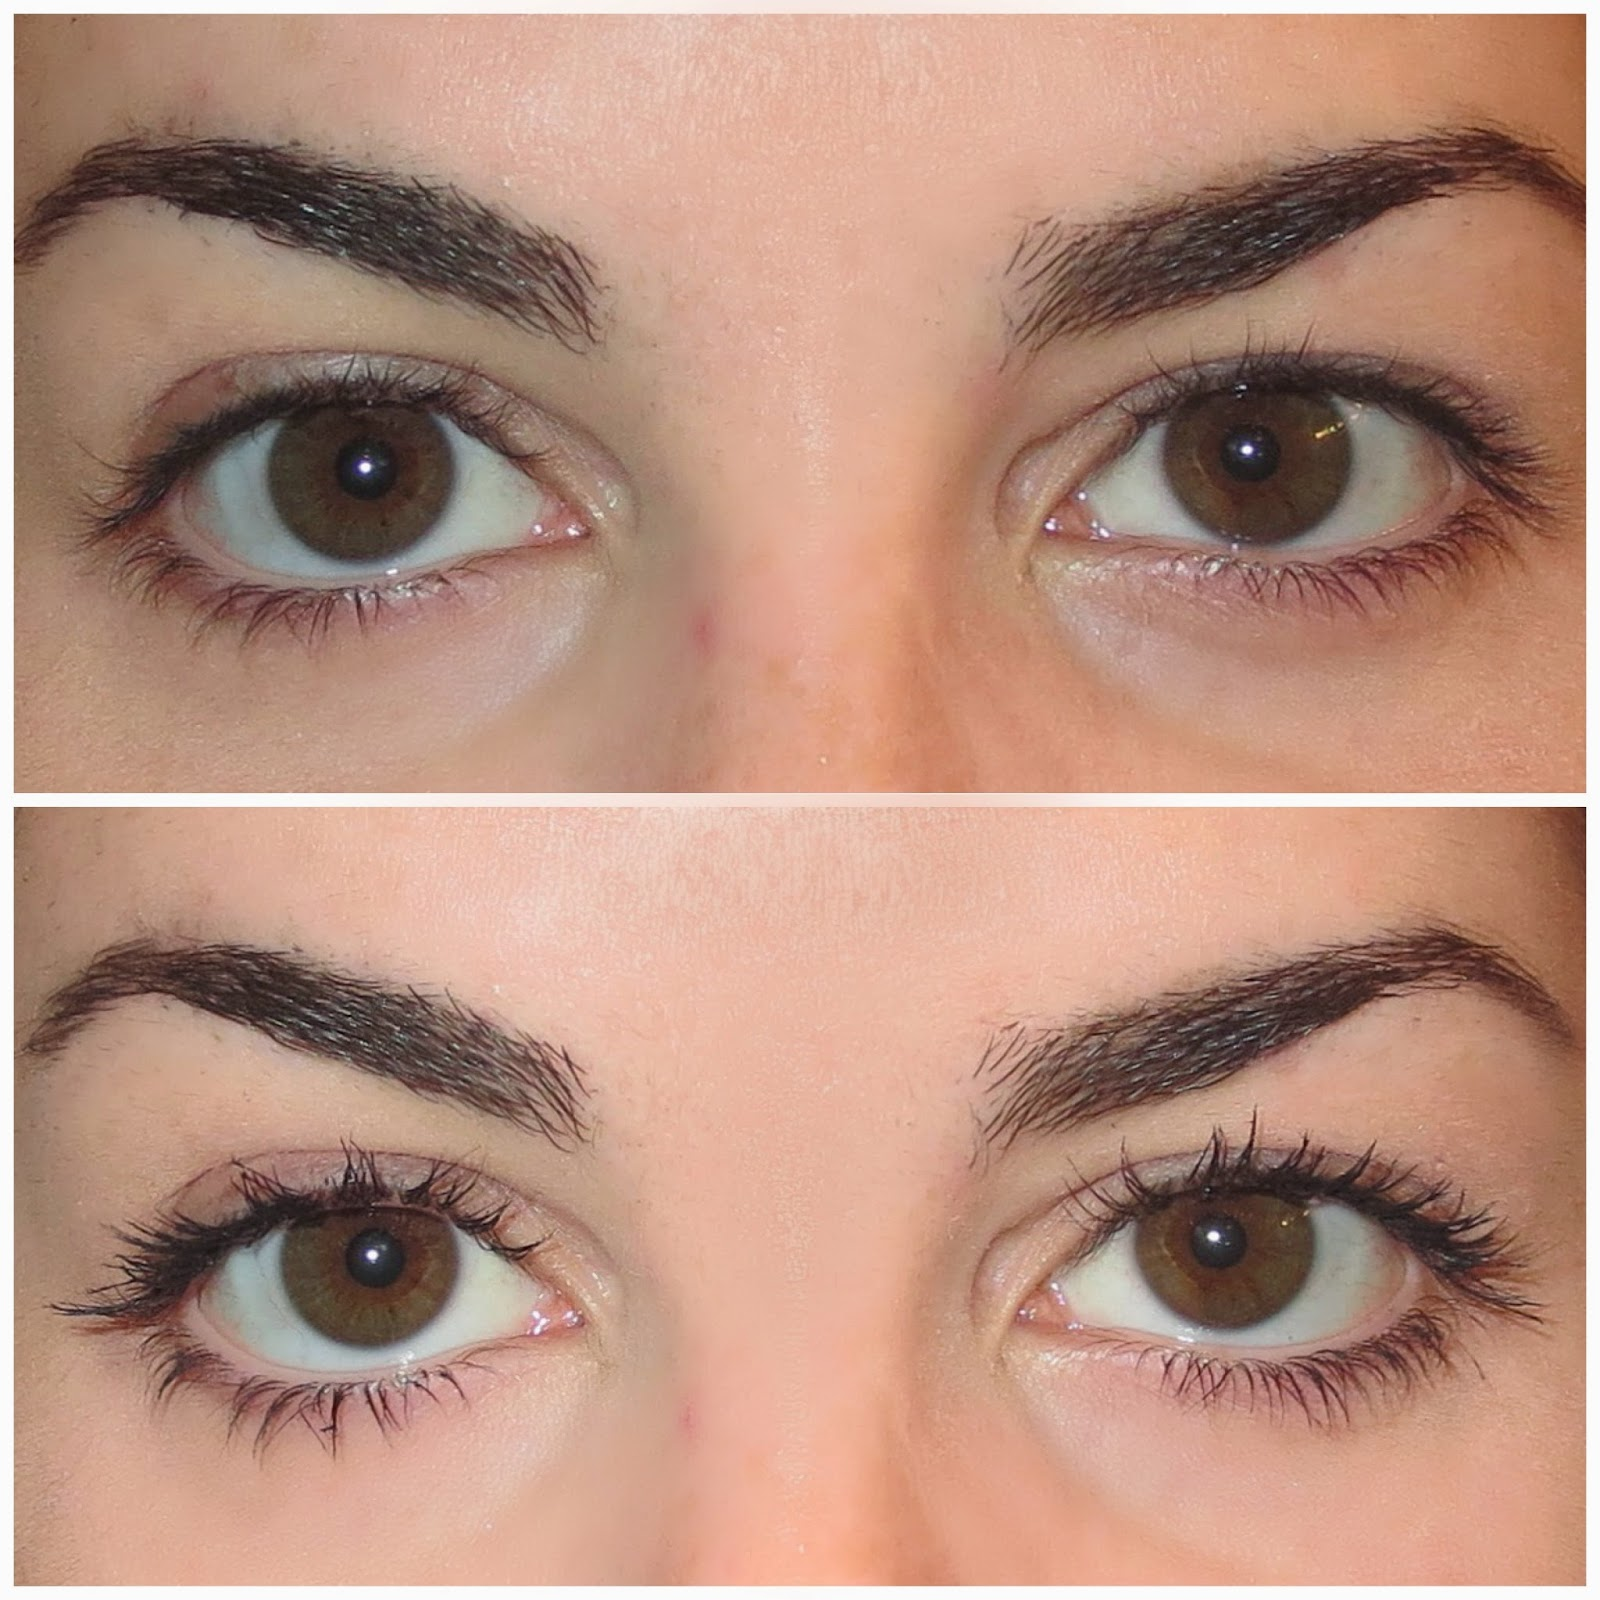 aba2acba8b6 a picture of lashes before and after one coat of Benefit Roller Lash mascara